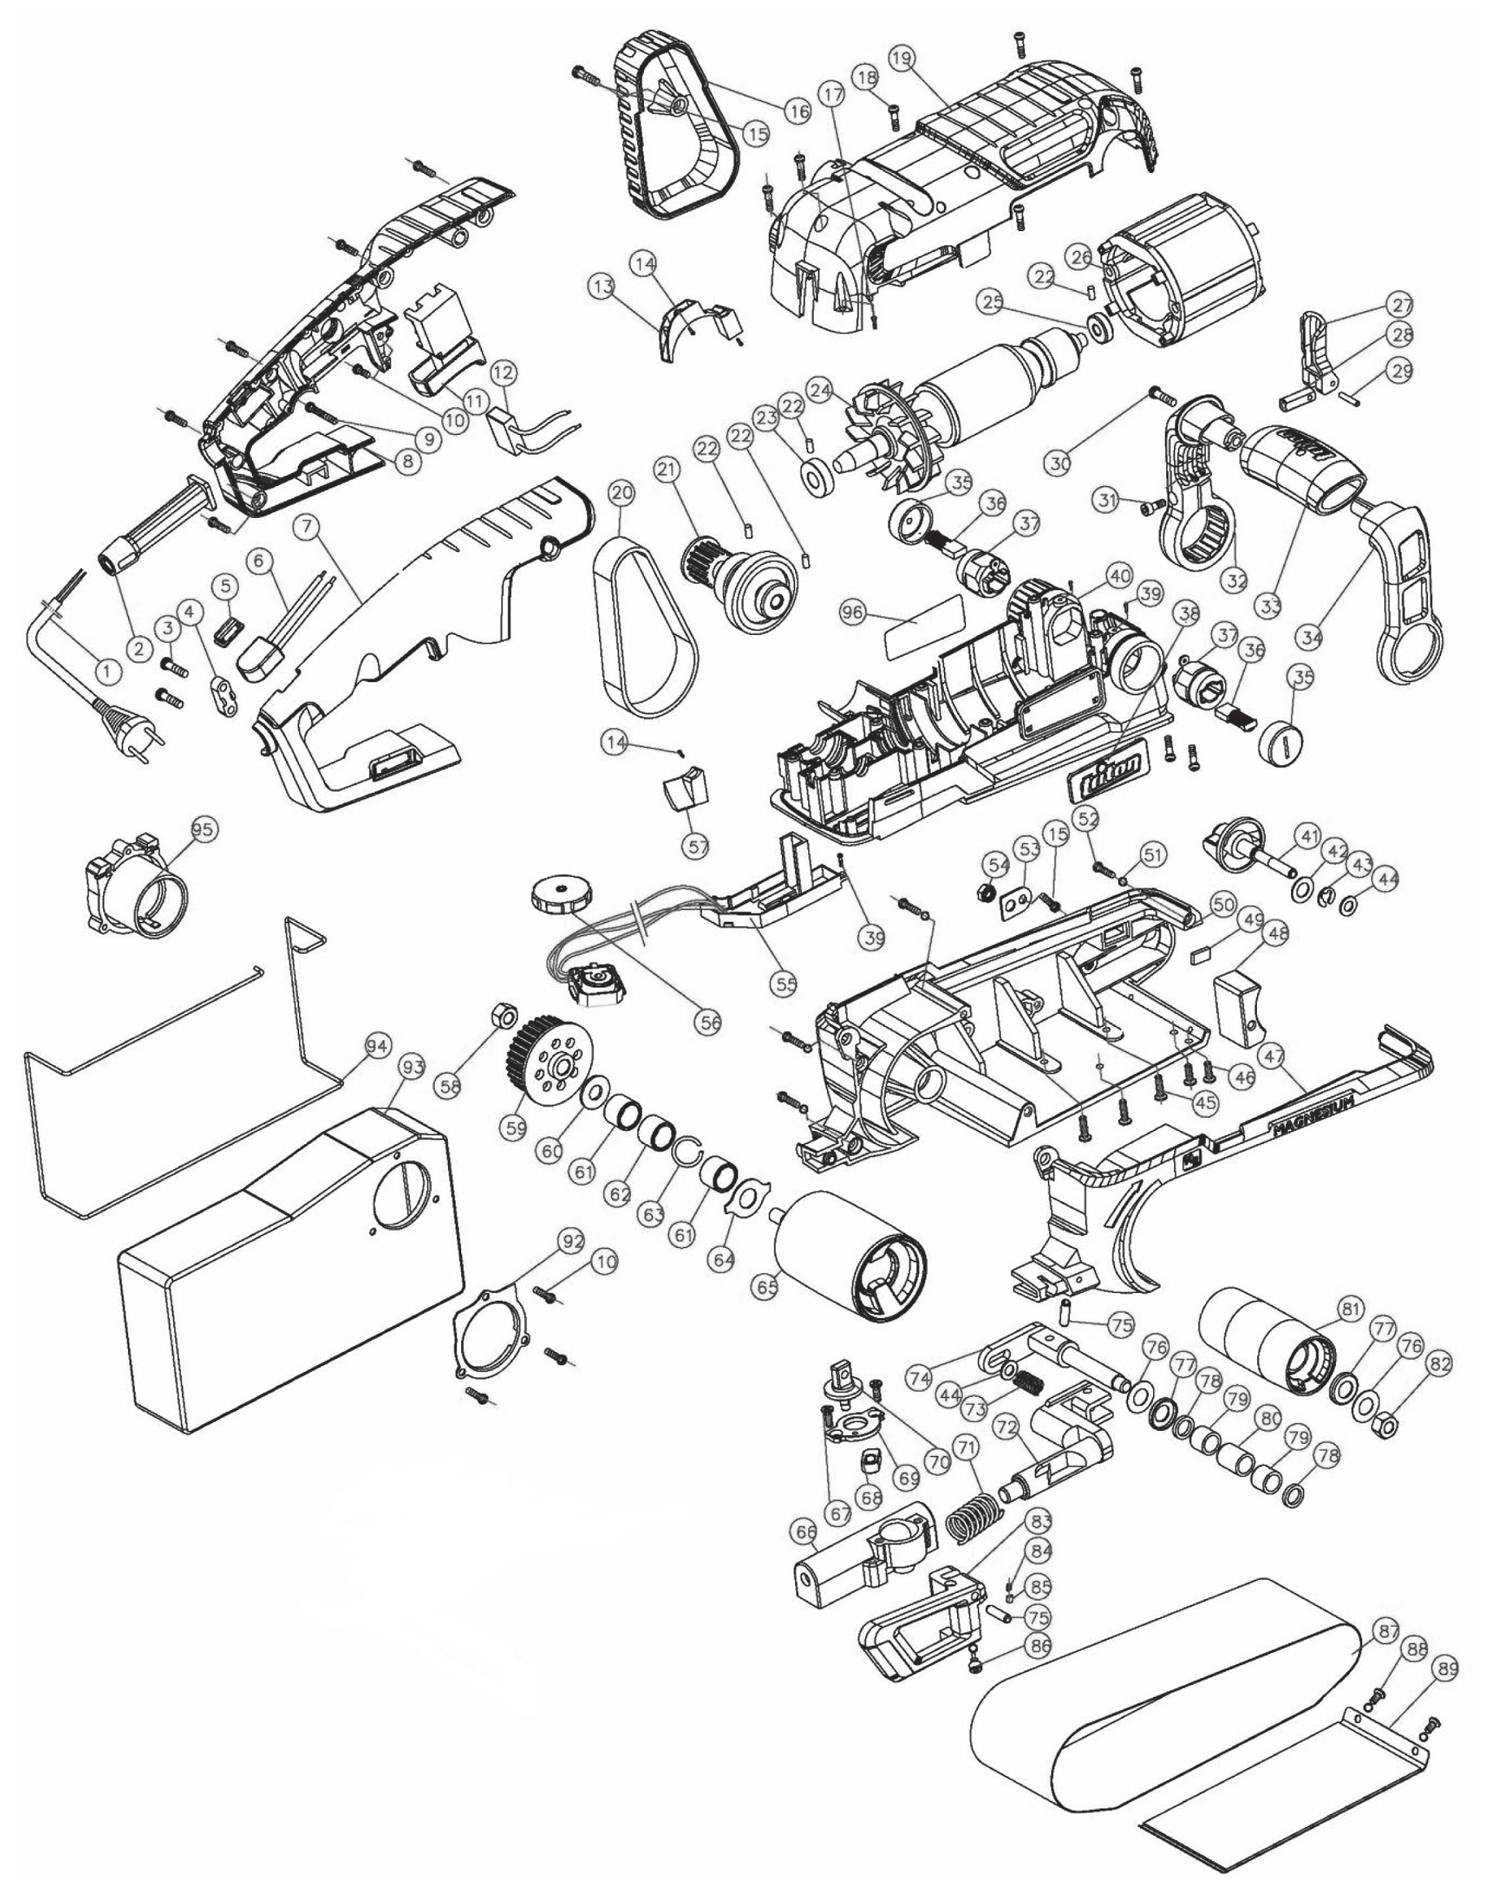 Hilti Dsh 700 Parts Diagram Within Diagram Wiring And